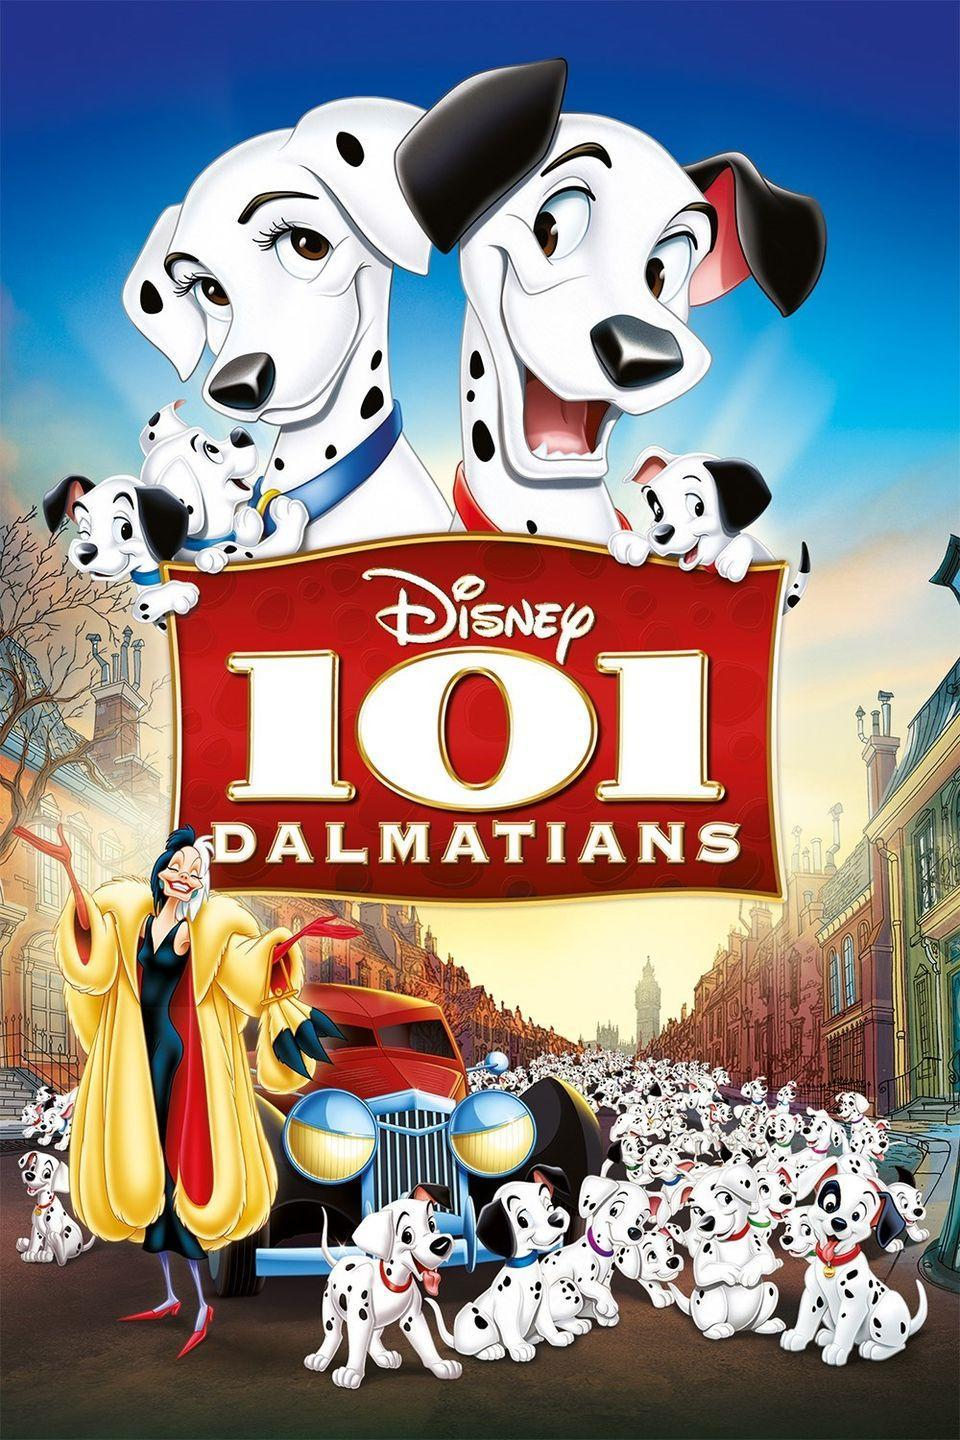 """<p><a href=""""https://www.seventeen.com/celebrity/movies-tv/news/a39942/emma-stone-stars-in-cruella/"""" rel=""""nofollow noopener"""" target=""""_blank"""" data-ylk=""""slk:101 Dalmatians' fur-loving villain is getting her own solo movie"""" class=""""link rapid-noclick-resp""""><em>101 Dalmatians'</em> fur-loving villain is getting her own solo movie</a>. This adaptation is set to follow Cruella De Vil in her early days. In other words, she's getting the <em>Maleficent</em> treatment. Chances are, you'll leave the movie with a more well-rounded idea of what made Cruella so cruel-la. </p><p>Craig Gillespie, who directed <em>I, Tonya</em>, is set to direct the film, while Emma Stone is will be playing Cruella, according to <em><a href=""""https://deadline.com/2018/12/emma-stone-craig-gillespie-cruella-director-live-action-1202514016/"""" rel=""""nofollow noopener"""" target=""""_blank"""" data-ylk=""""slk:Deadline"""" class=""""link rapid-noclick-resp"""">Deadline</a></em>. The script is already done, so the movie can start filming as soon as they're ready. The movie is set to be released in May 2021 <a href=""""https://www.imdb.com/title/tt3228774/"""" rel=""""nofollow noopener"""" target=""""_blank"""" data-ylk=""""slk:according to IMDb"""" class=""""link rapid-noclick-resp"""">according to IMDb</a>.</p><p>The iconic Dalmatians also got their own movie and a sequel back in 1996 and 2000 respectively. <a href=""""https://www.imdb.com/title/tt0115433/trivia?ref_=tt_trv_trv"""" rel=""""nofollow noopener"""" target=""""_blank"""" data-ylk=""""slk:IMDb said"""" class=""""link rapid-noclick-resp"""">IMDb said</a> said the production team had to train over 200 puppies for the first film. Sounds like a dream job. </p>"""